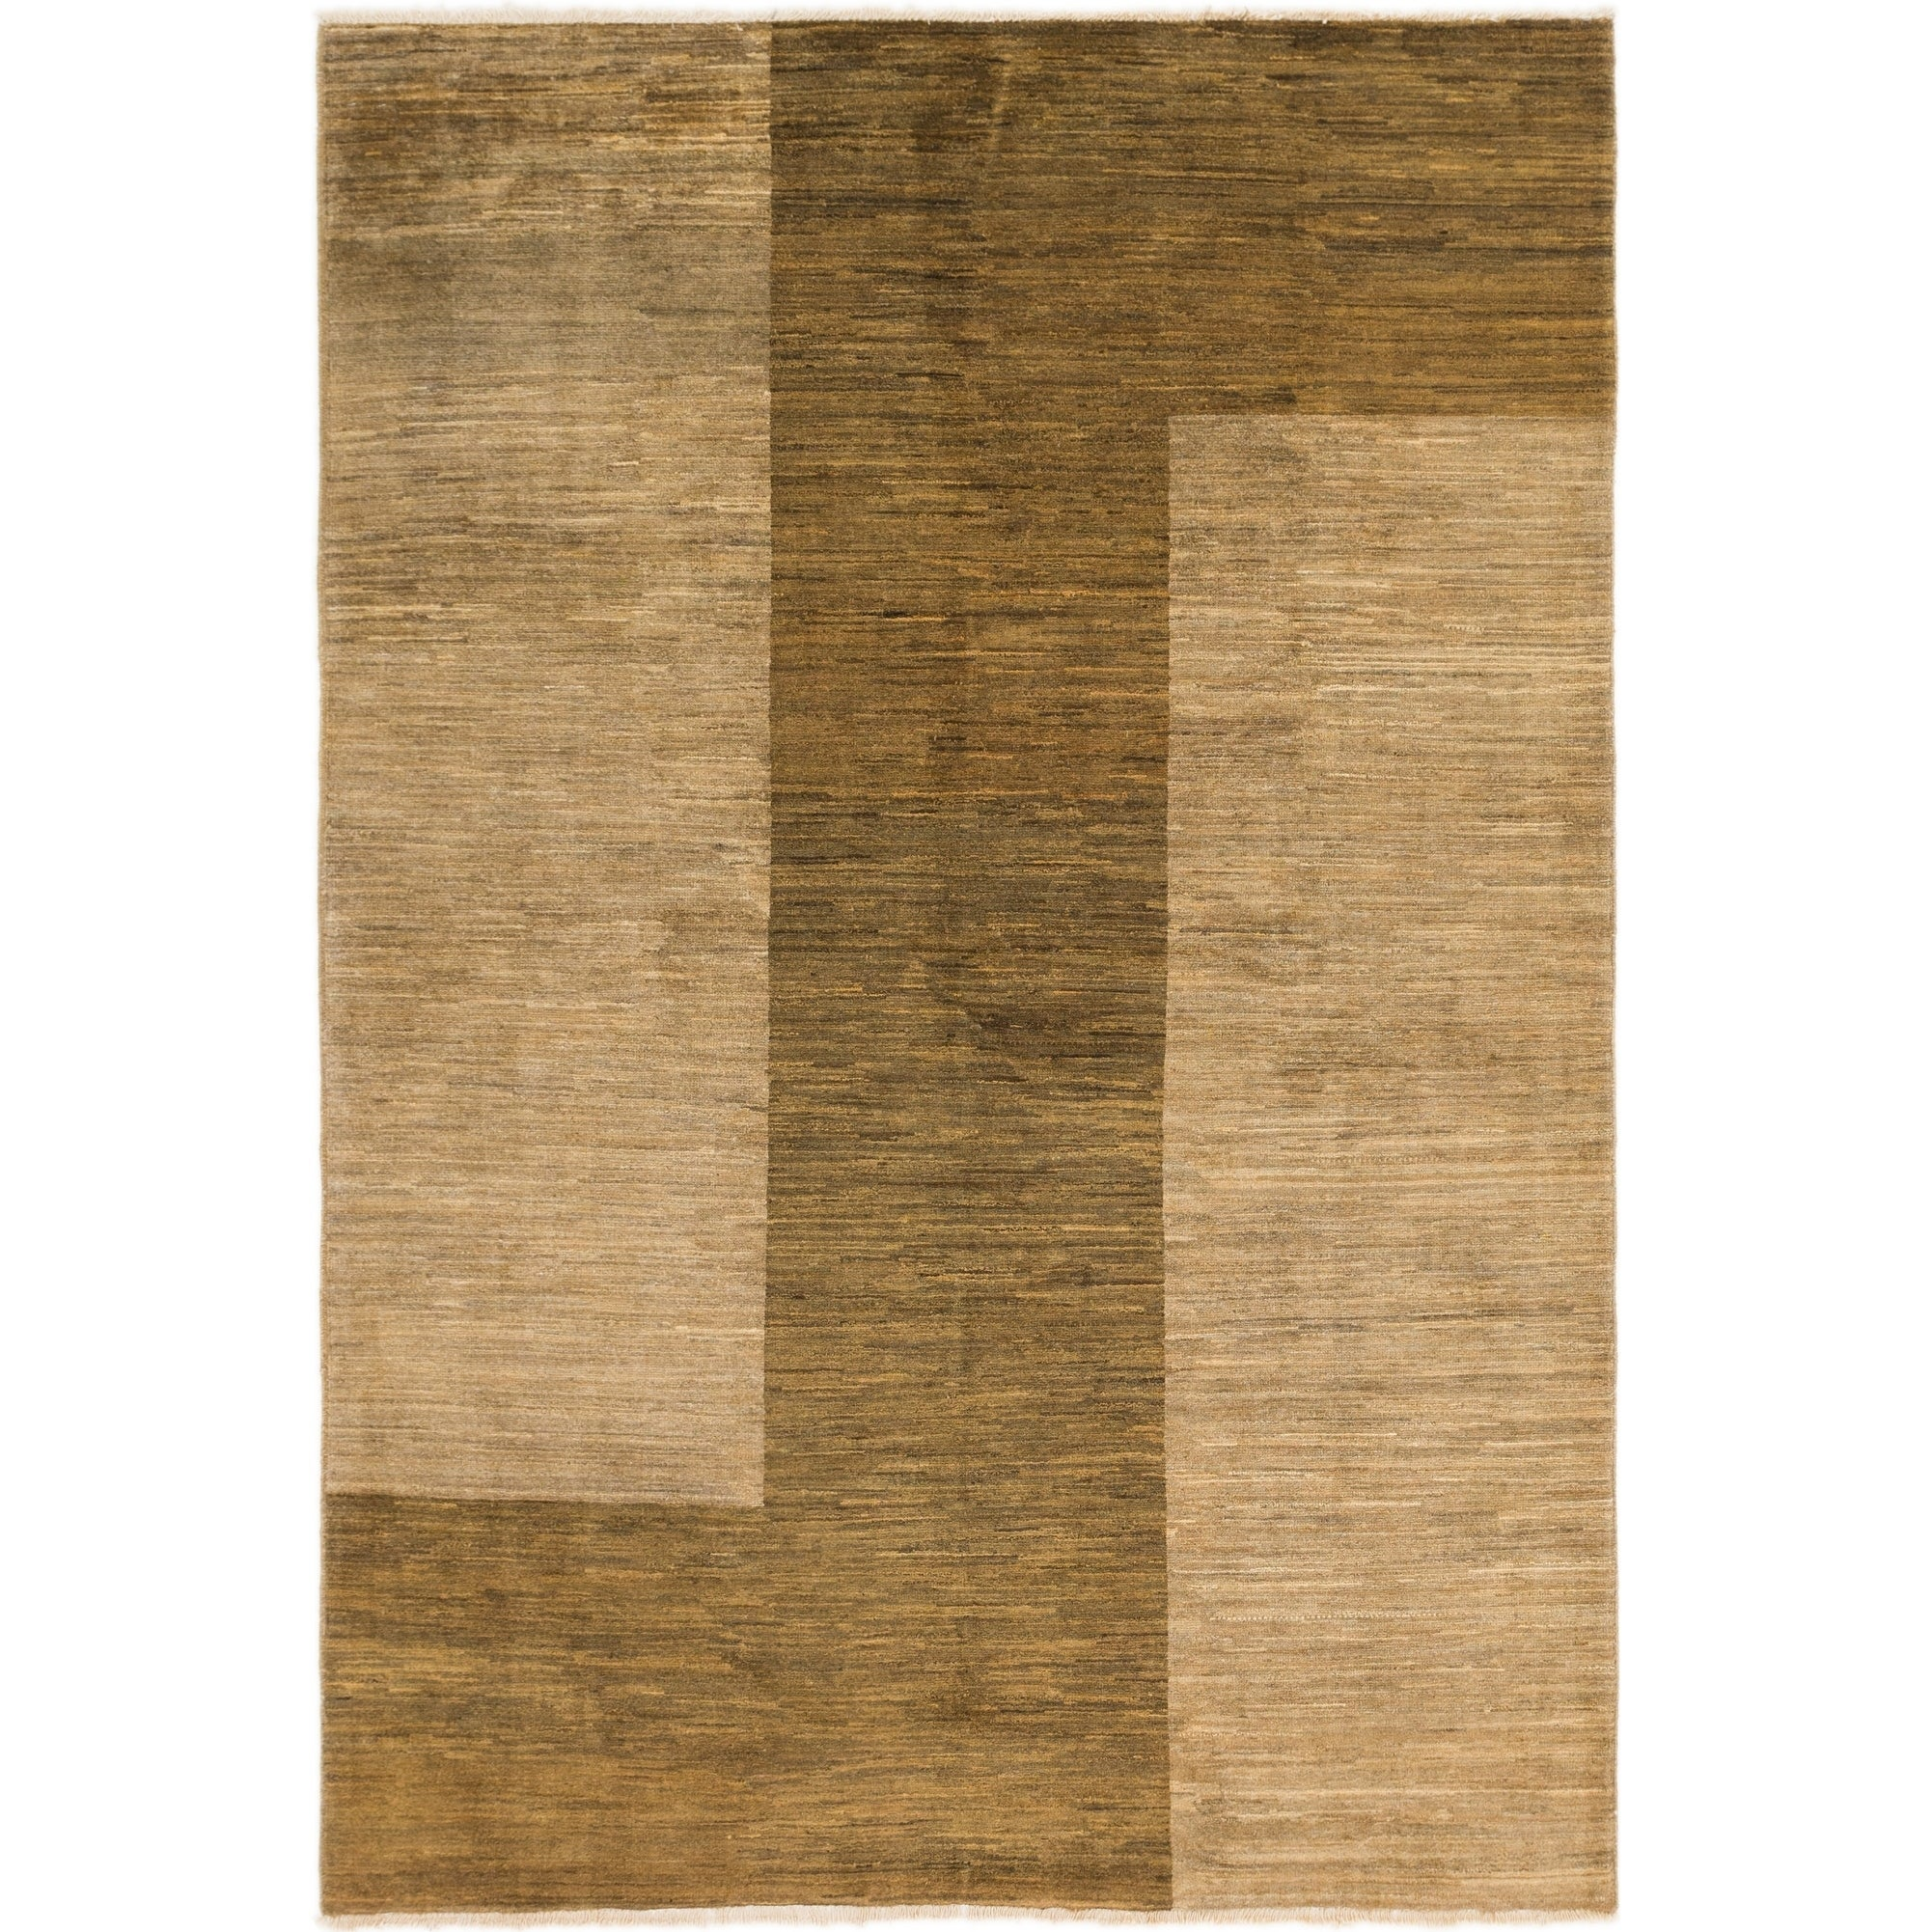 Hand Knotted Kashkuli Gabbeh Wool Area Rug - 6 x 8 9 (Brown - 6 x 8 9)